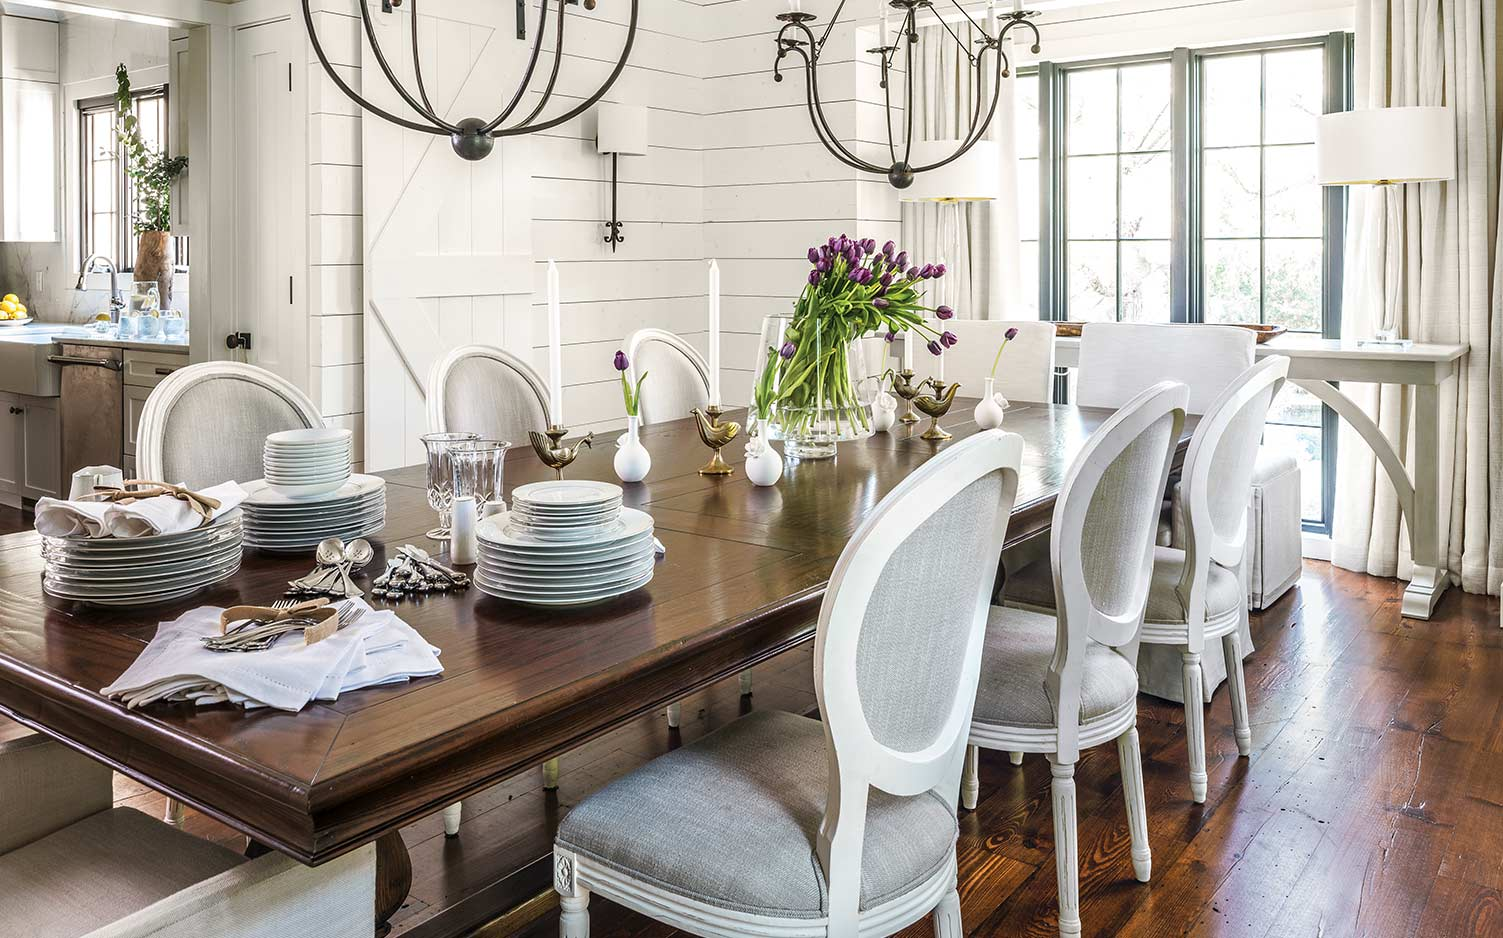 Southern Style at Home